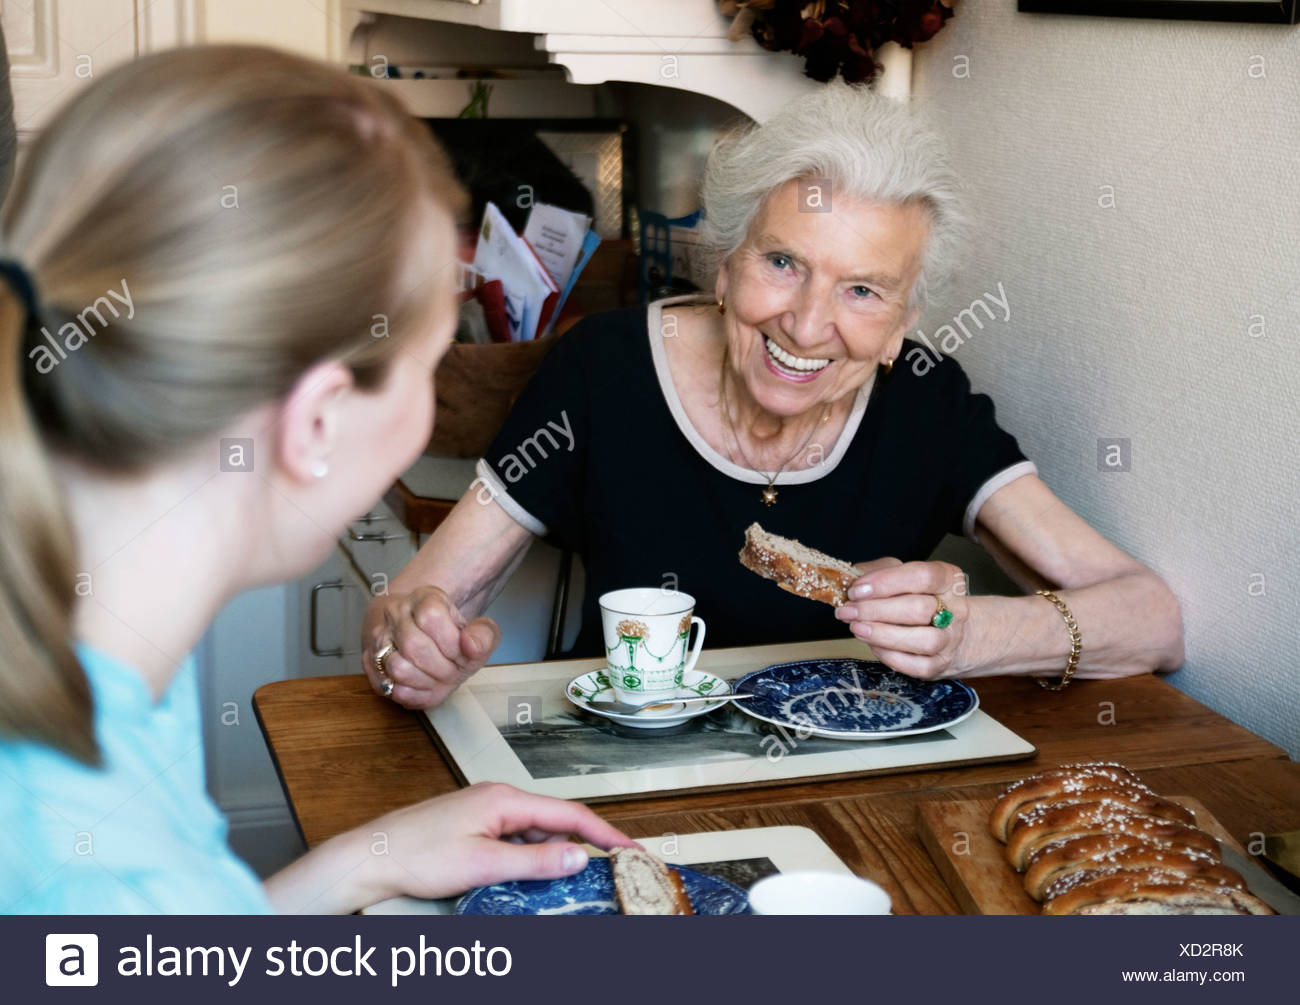 Two women sitting and eating buns - Stock Image